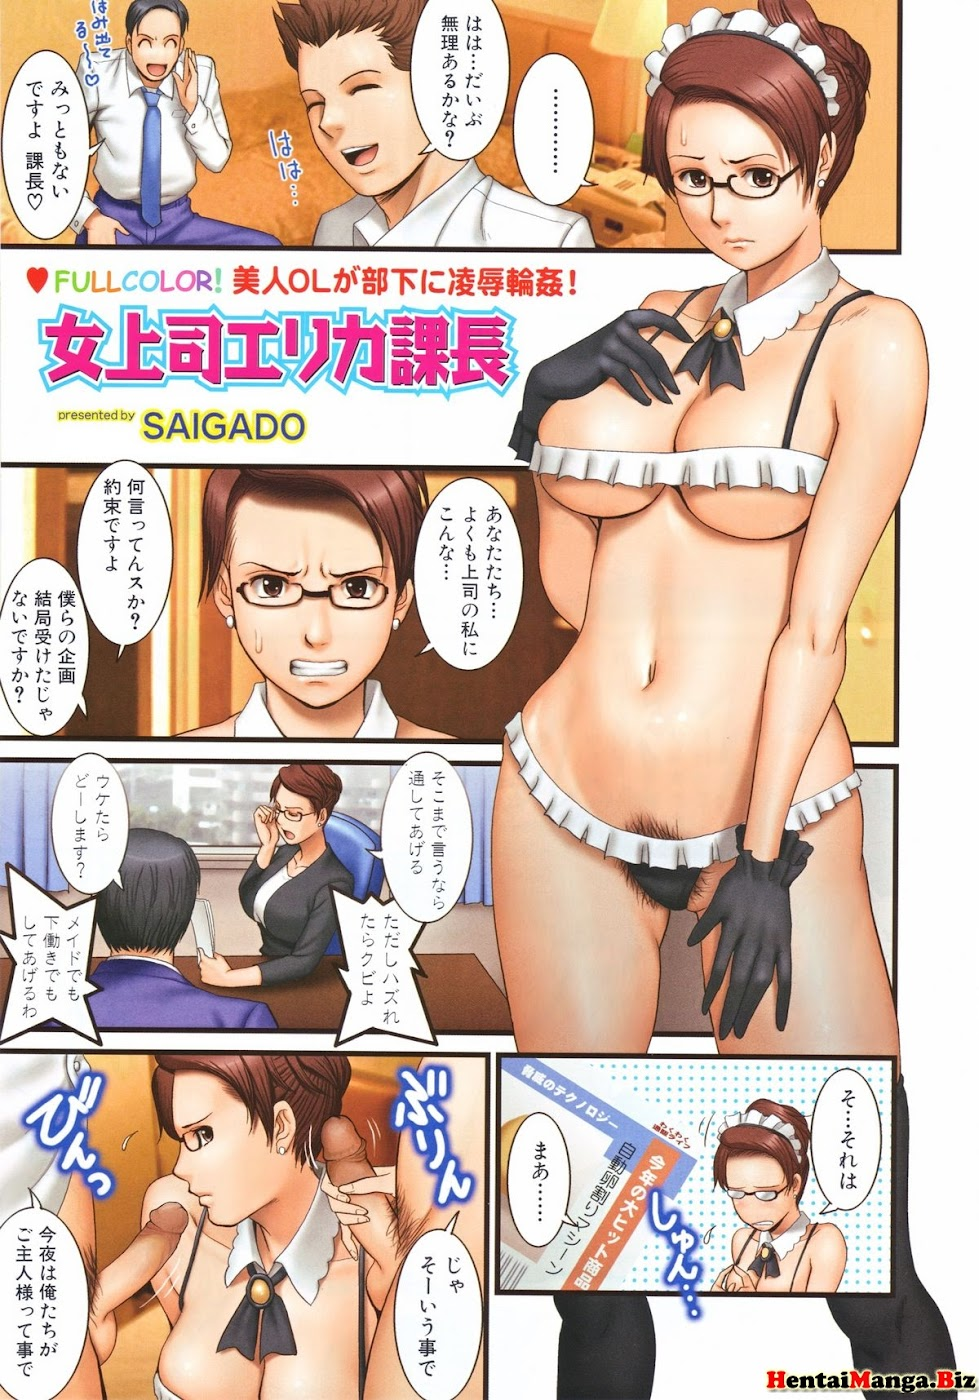 Hentai Manga - Woman Boss Erika Section Manager [Saigado]-Read-Hentai-Manga-Onlnie